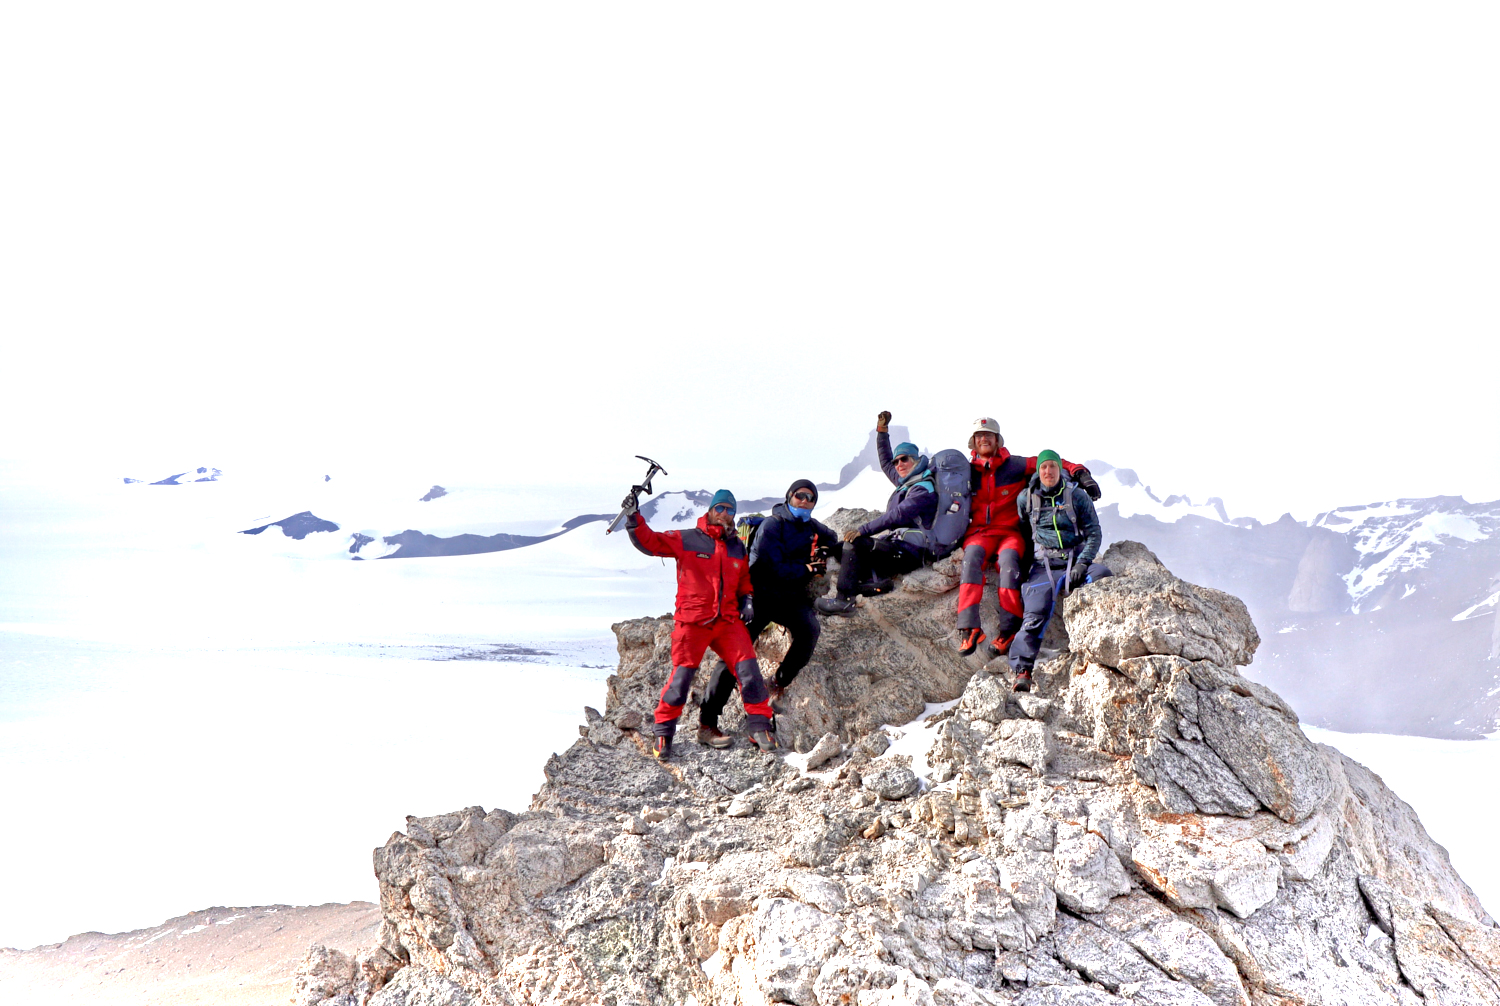 Jansdotter hikes in the nearby mountain together with the overwintering team in summer time when the midnight sun is out 24 hours. From left to right: Alexander Sola, electrician; Aleksander Tvedt, plumber; Karin Jansdotter, chef; Roald Klingsheim, research technician; Thomas Dretvik, doctor. (Photo: Alexander Sola)